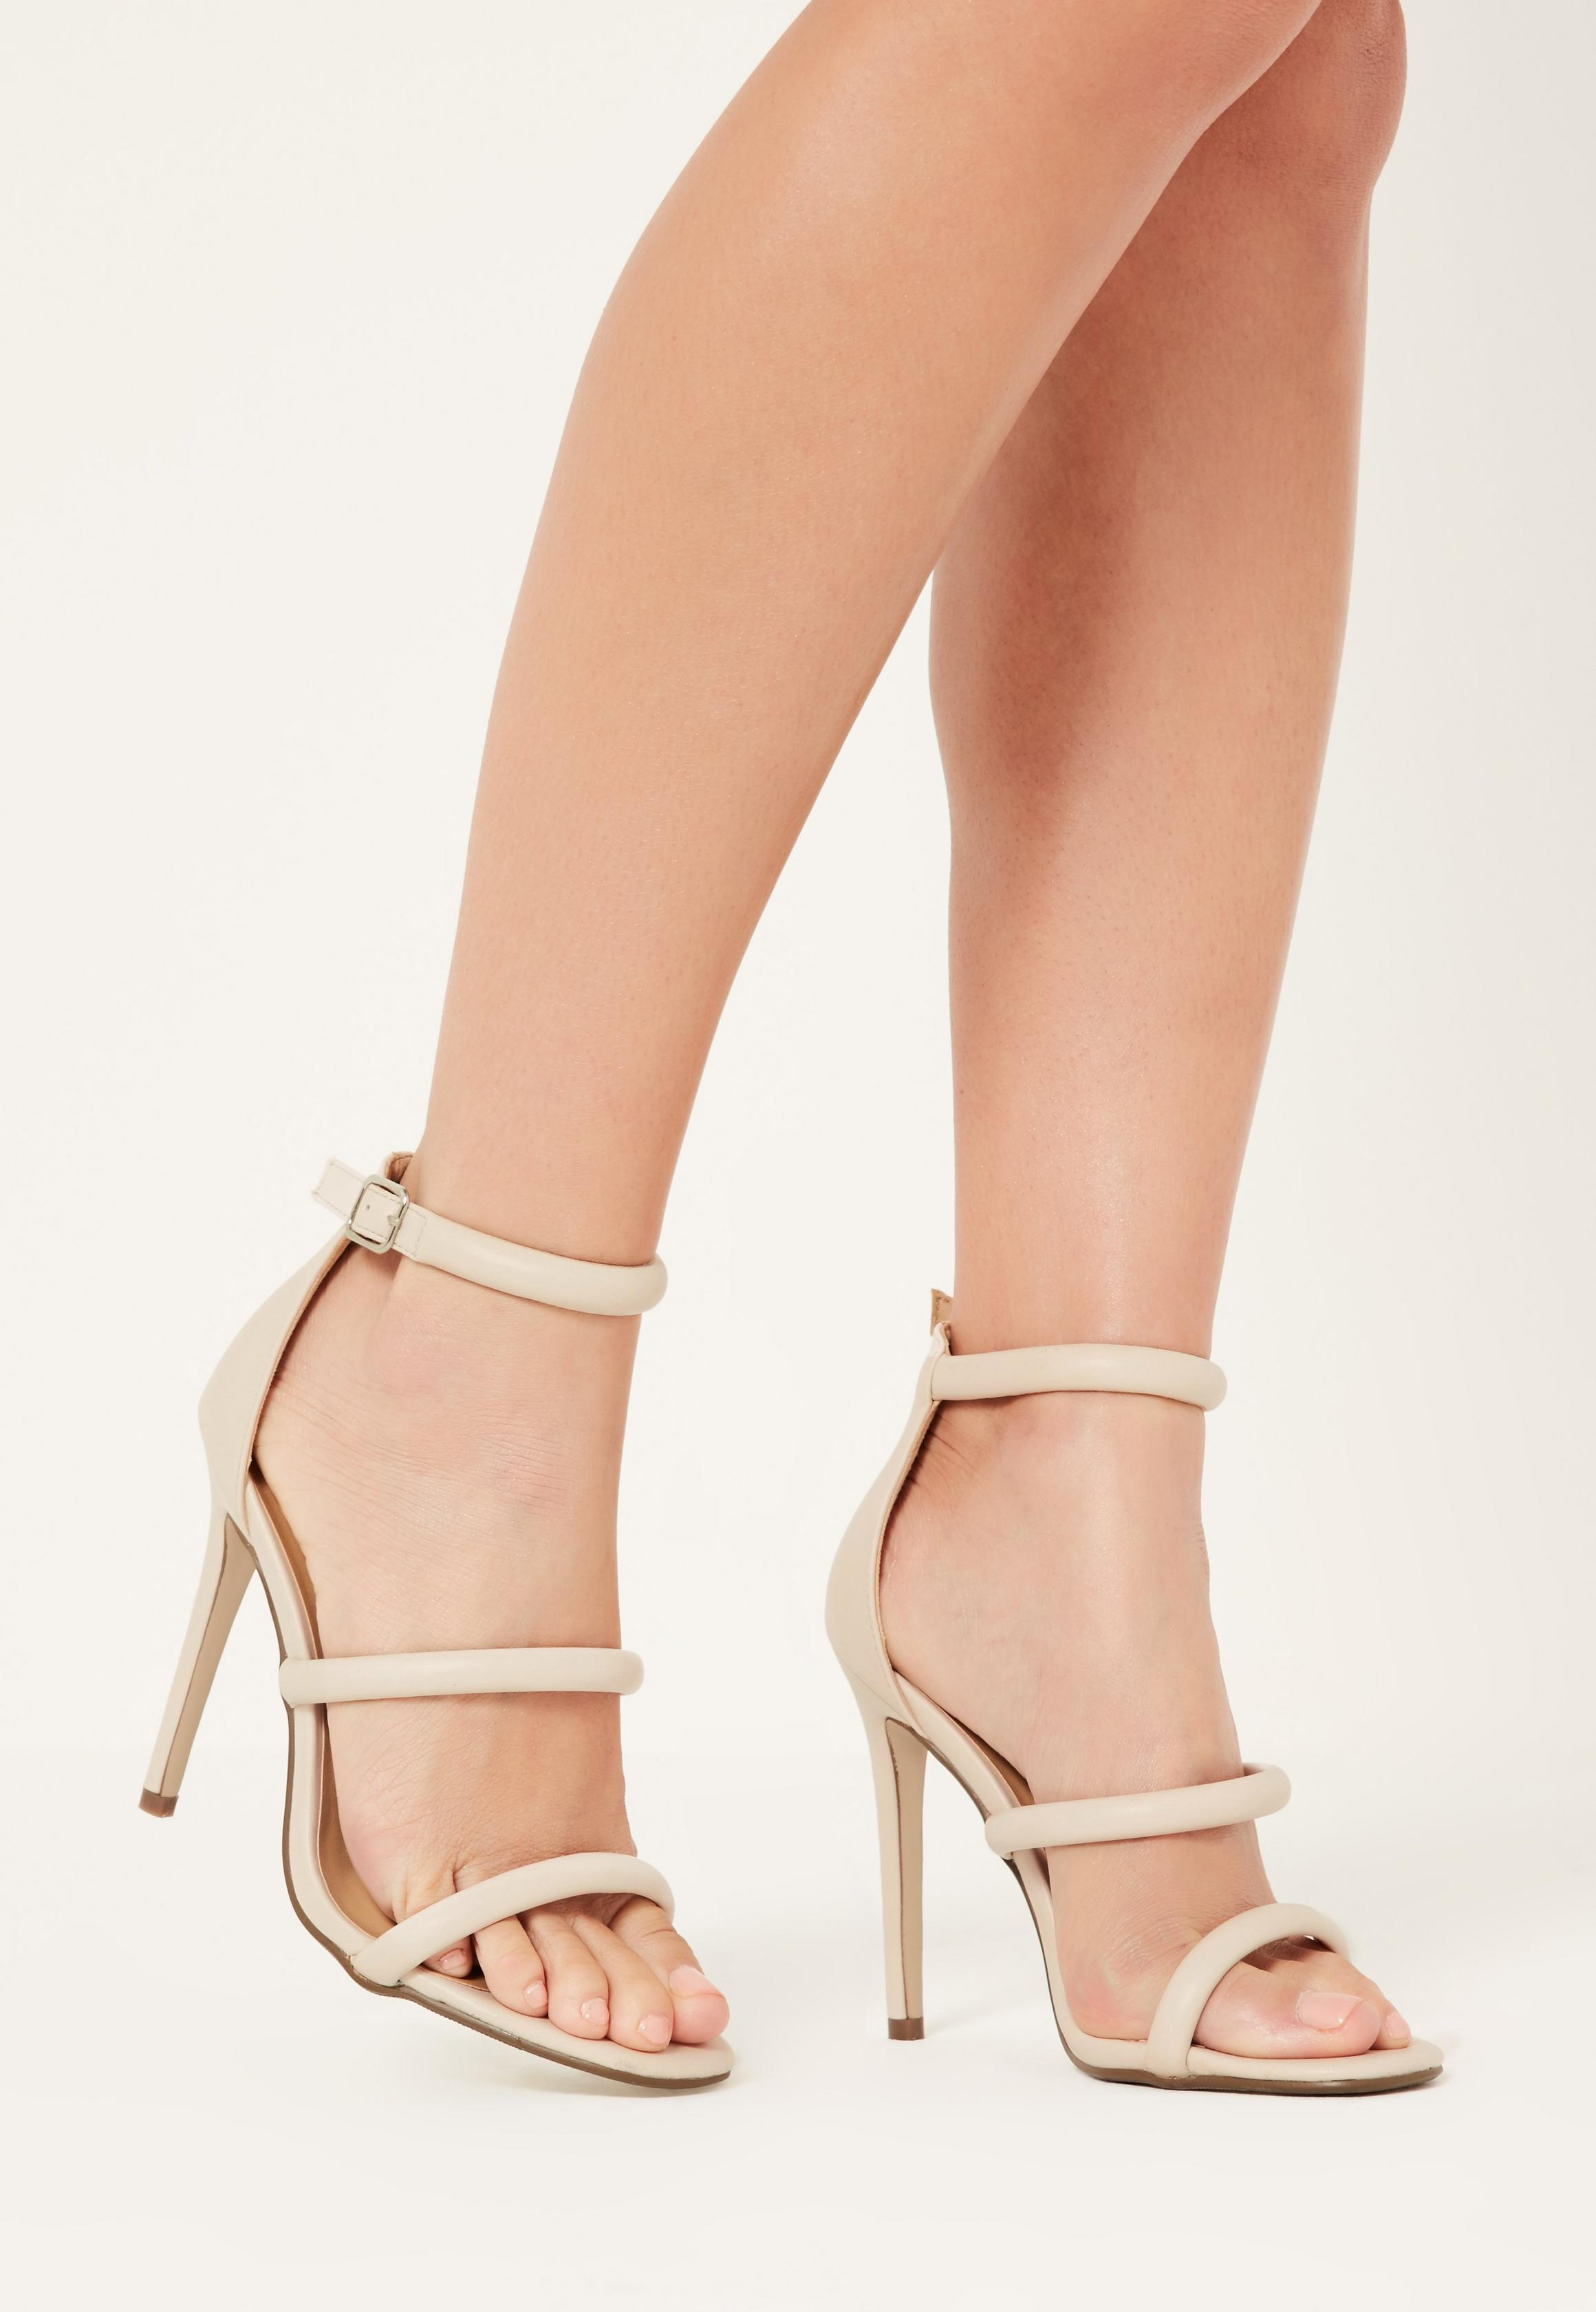 nude-rounded-three-strap-barely-there-heels.jpg